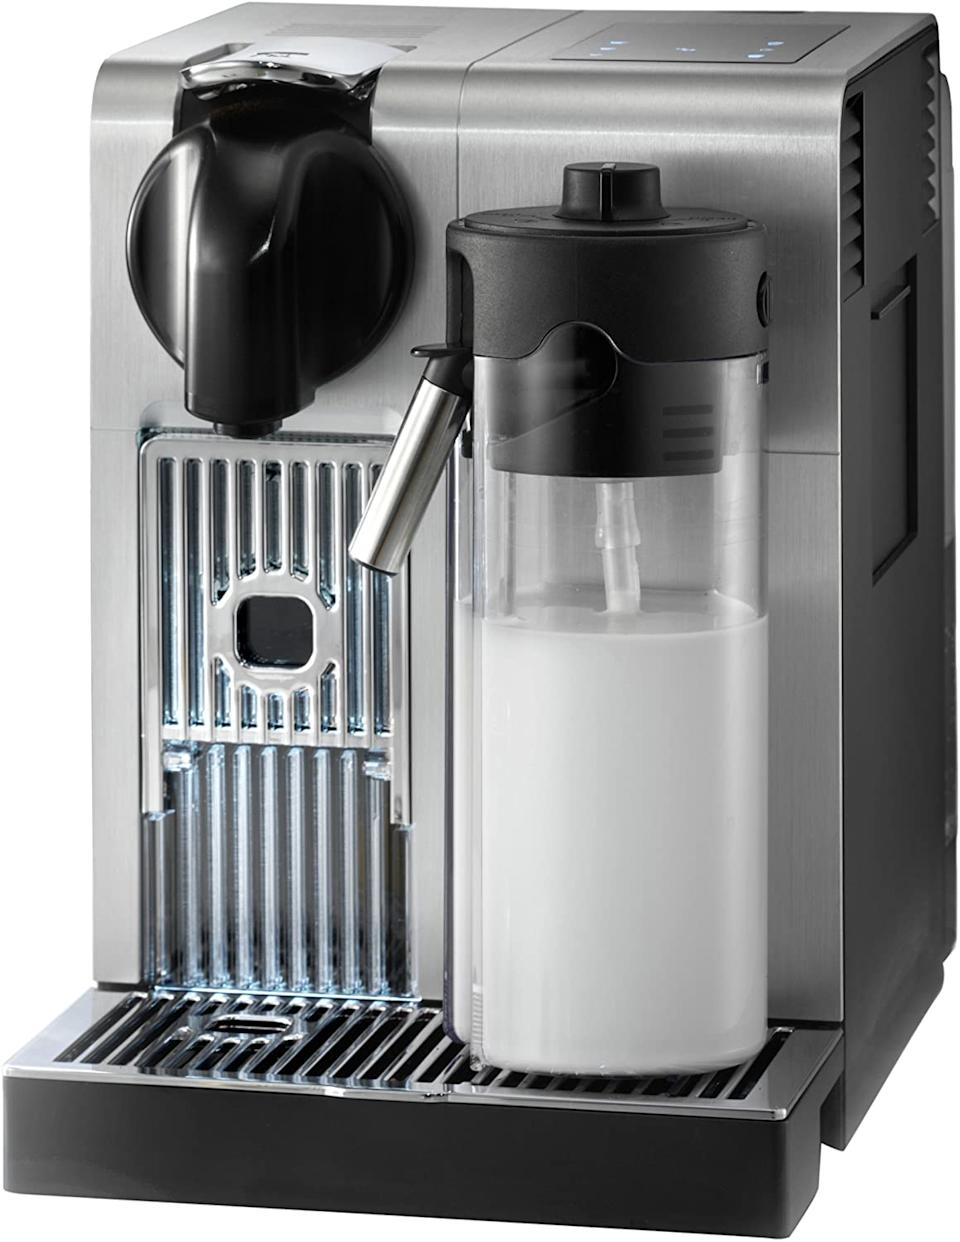 Nespresso Lattissima Pro Coffee Machine by DeLonghi. Image via Amazon.